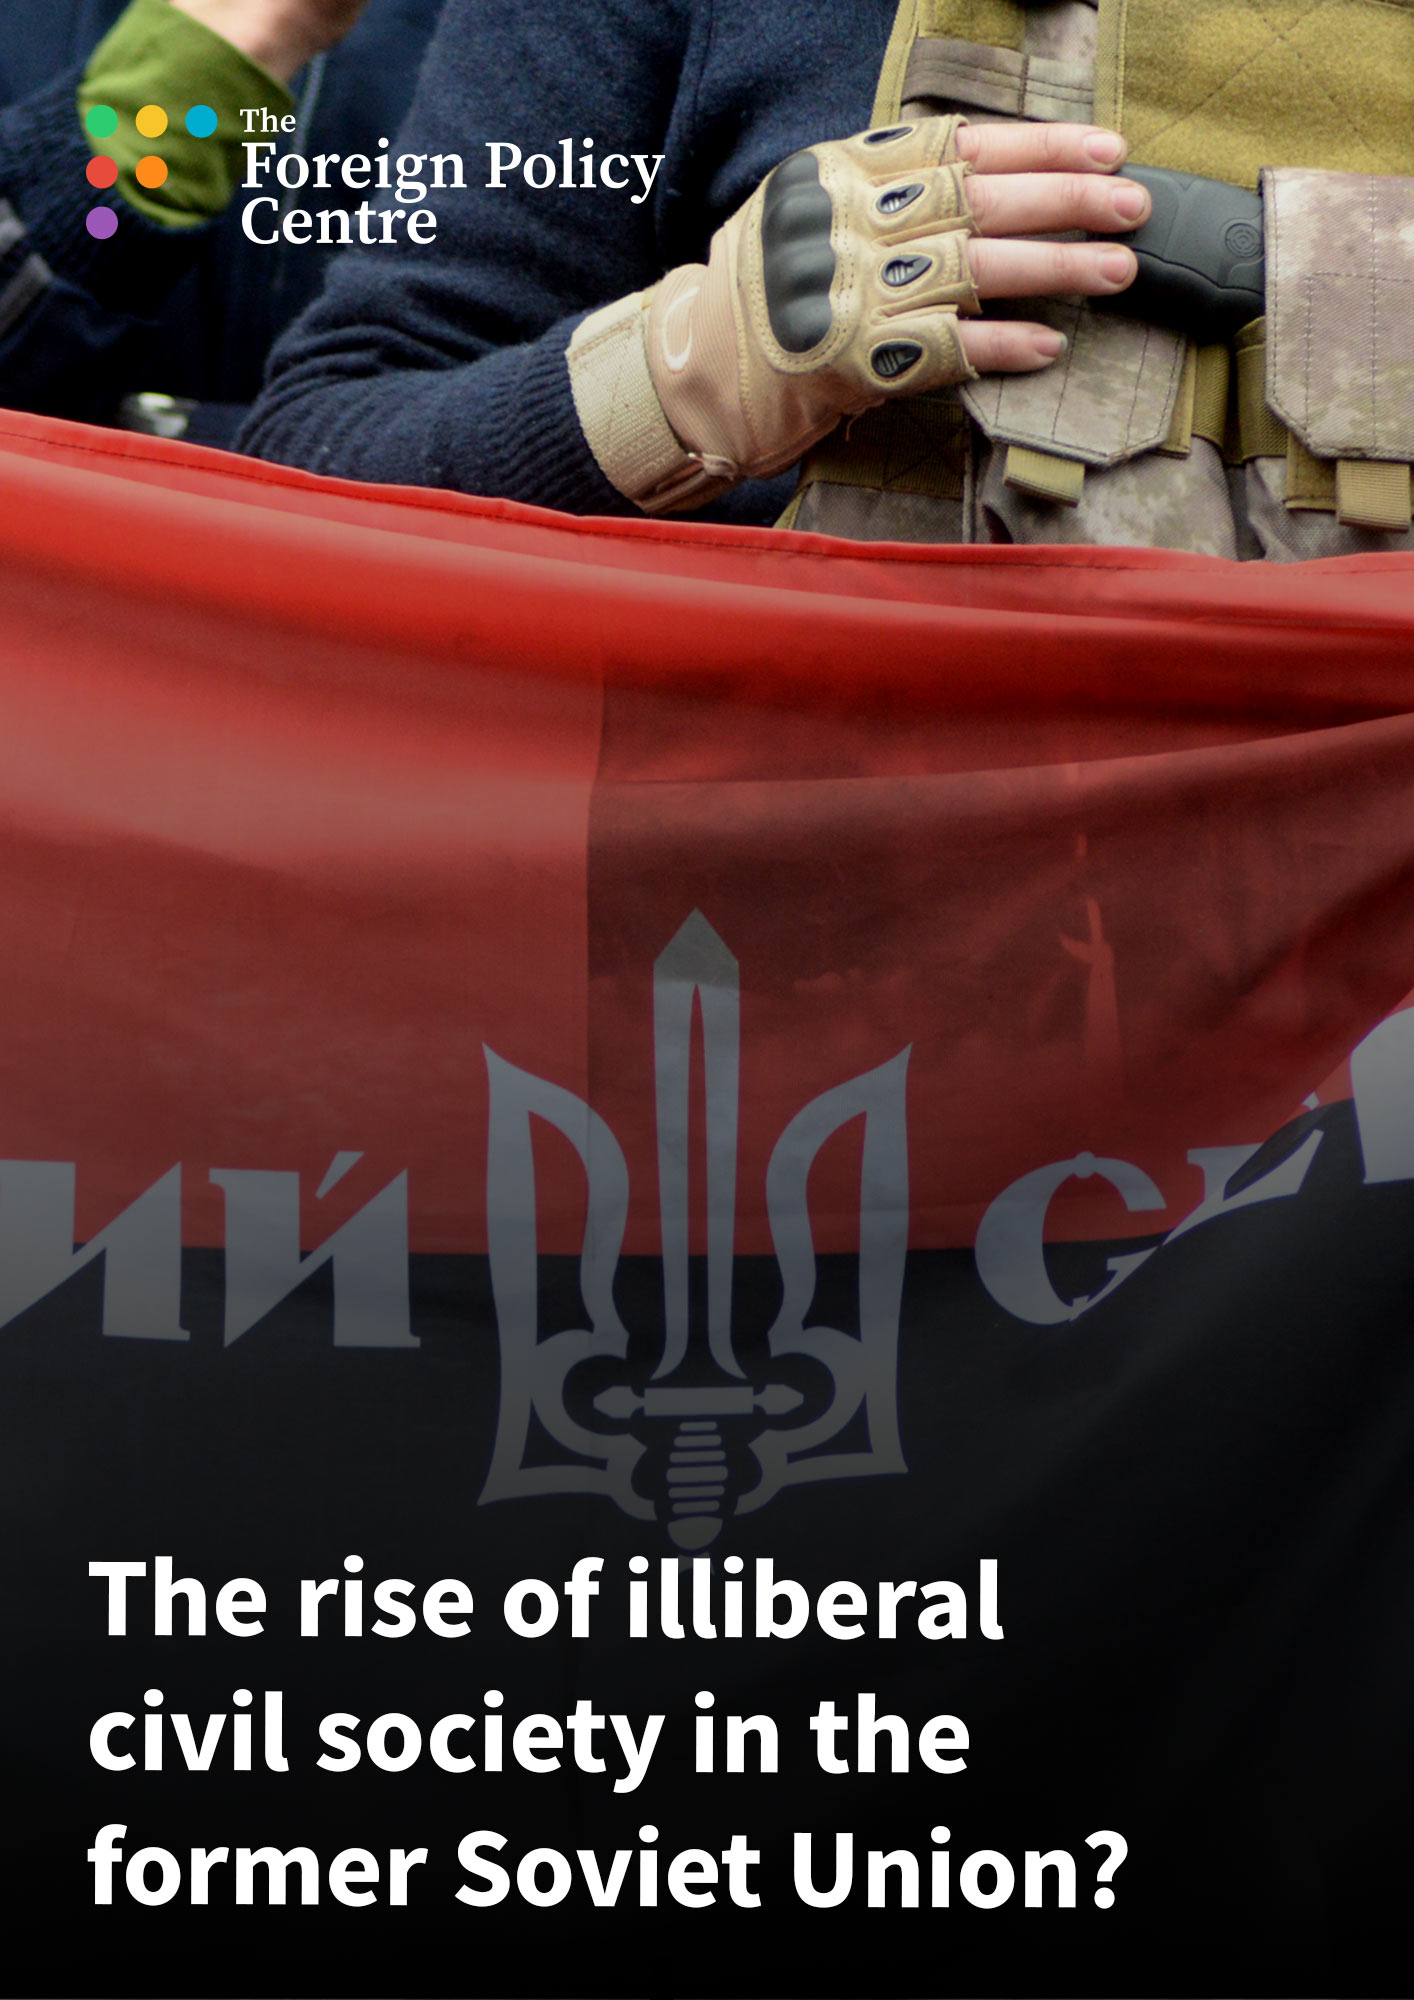 The rise of illiberal civil society in the former Soviet Union?